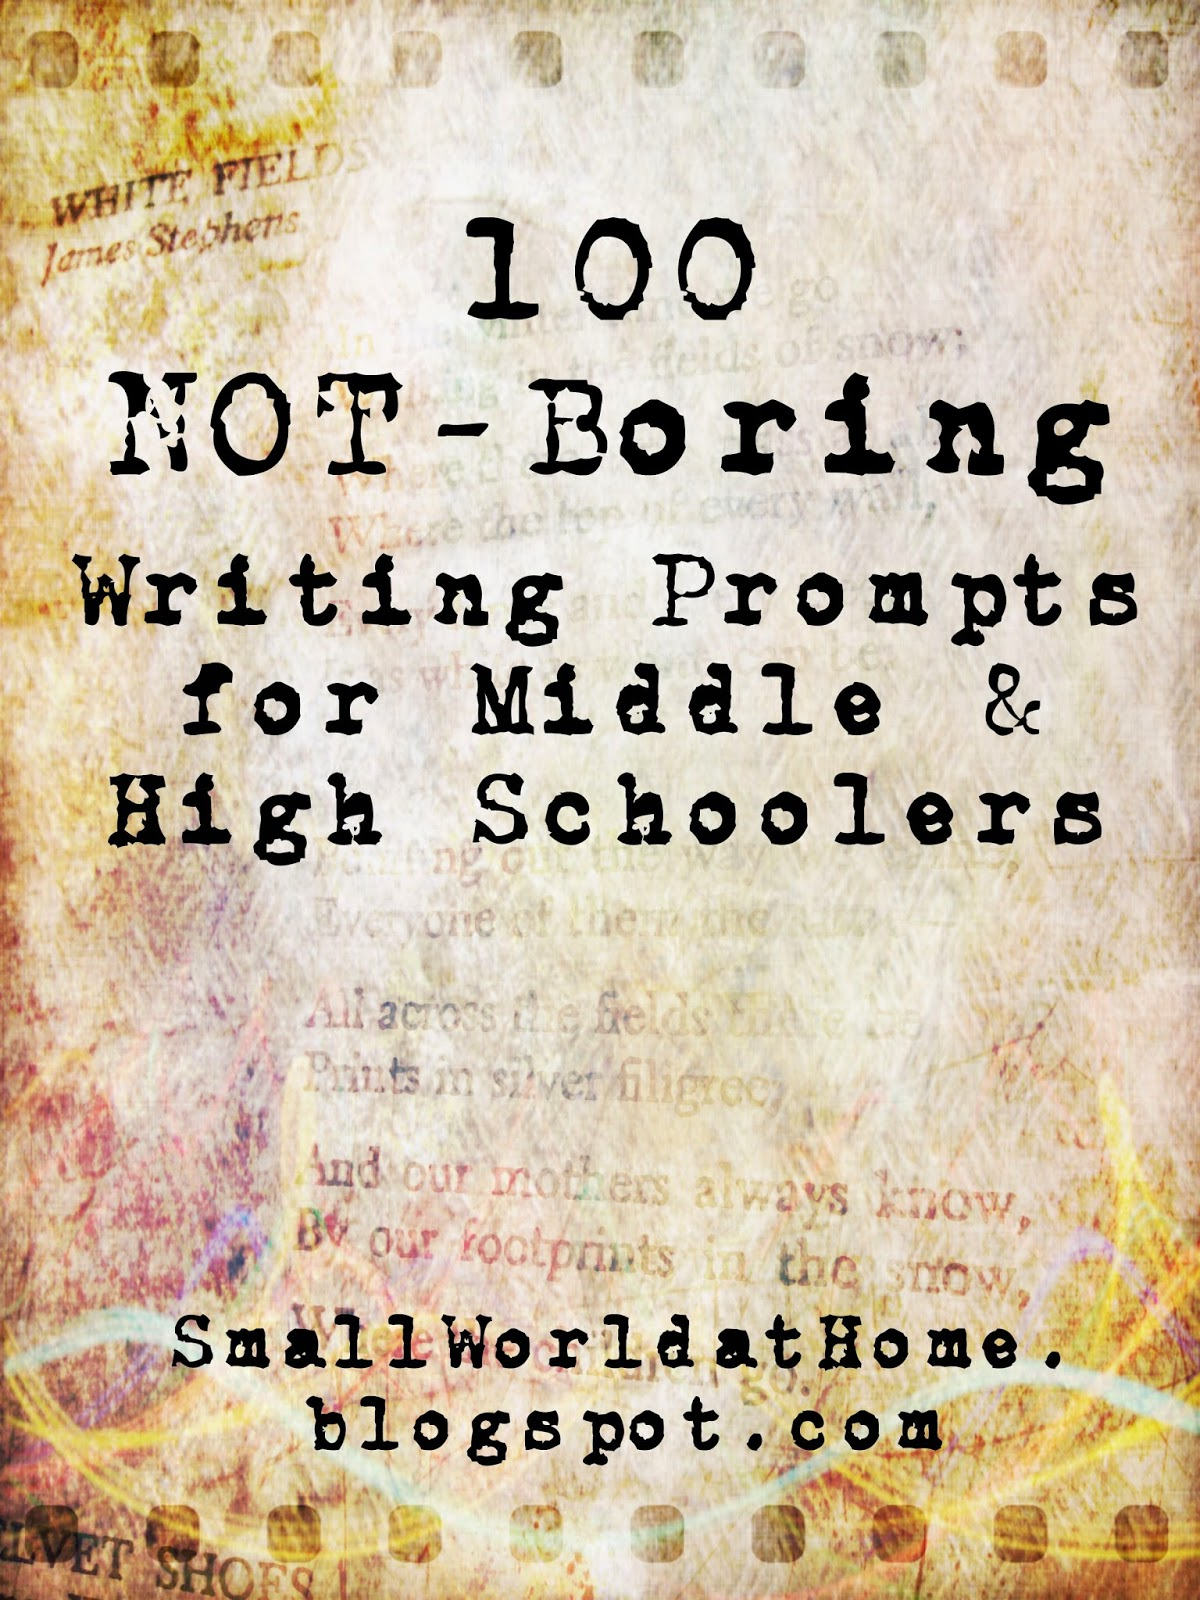 SmallWorld: 100 Not-Boring Writing Prompts for Middle- and